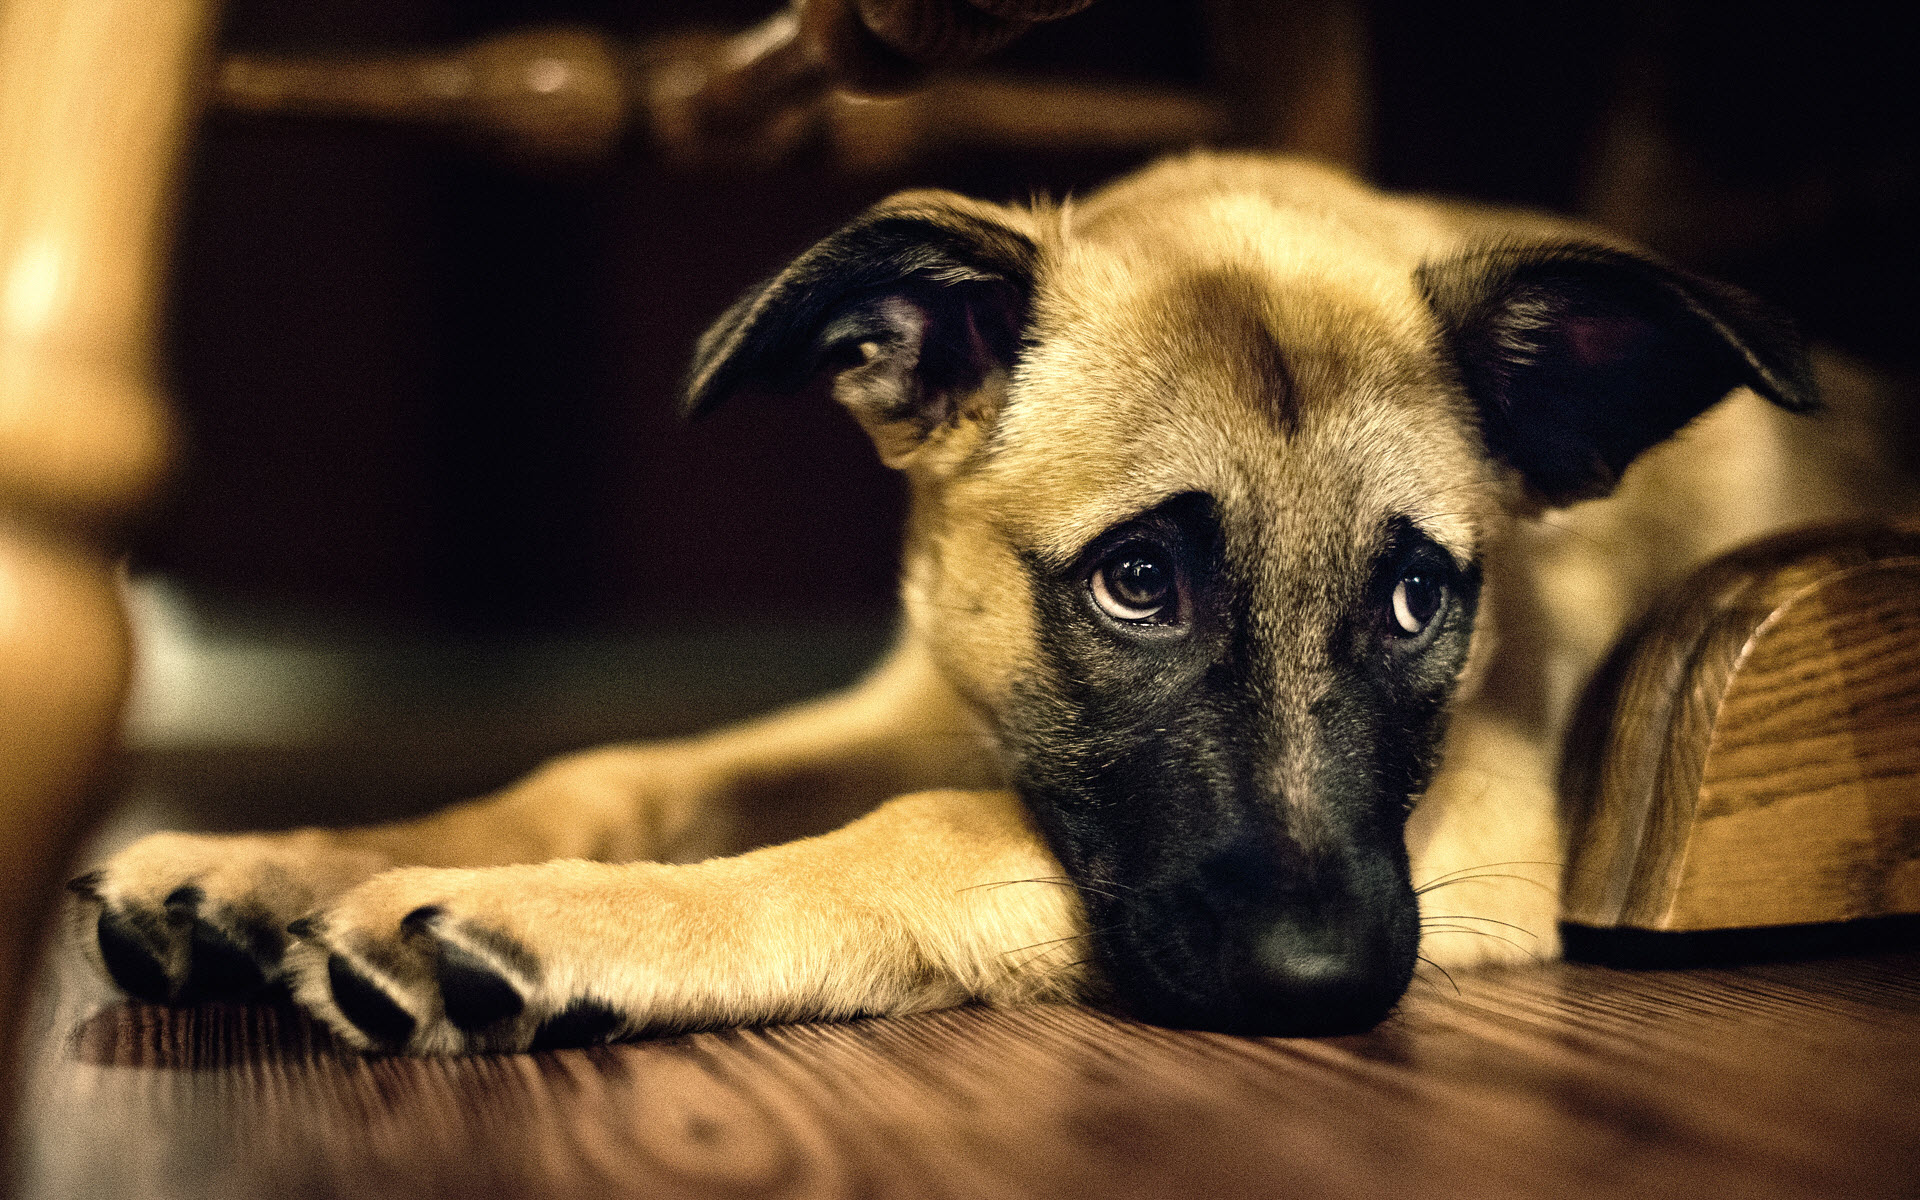 Sad-Dog-on-Hardwood-Floor